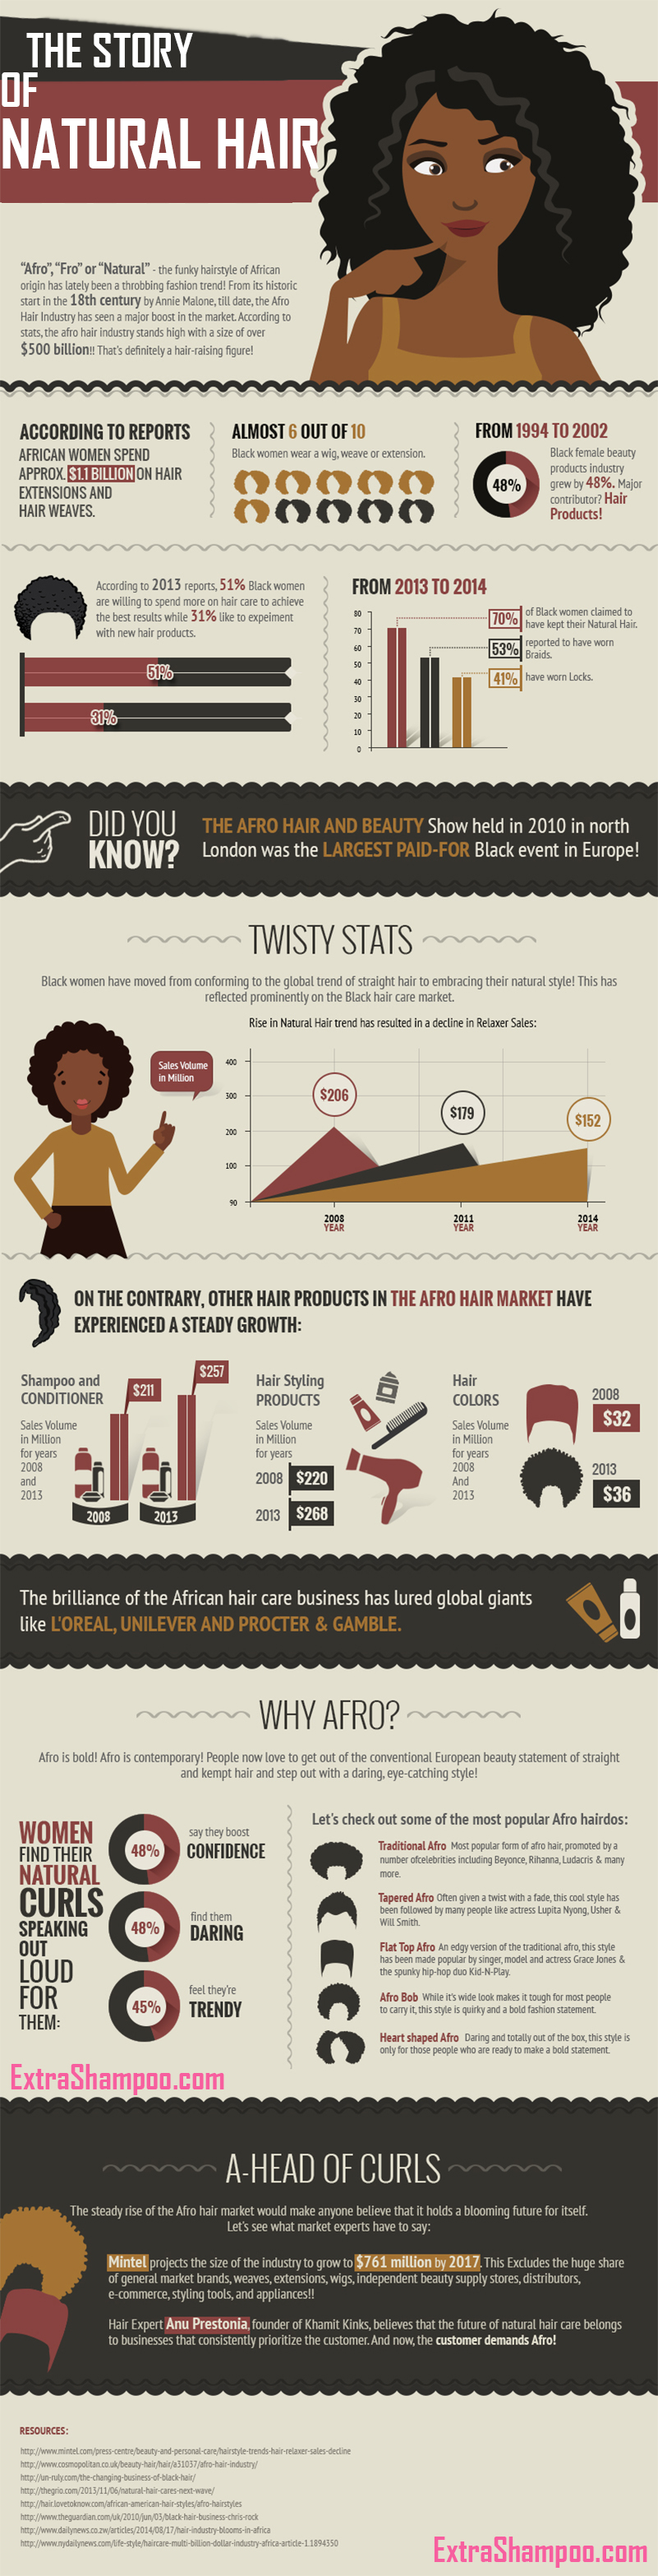 The Story Of Natural Hair